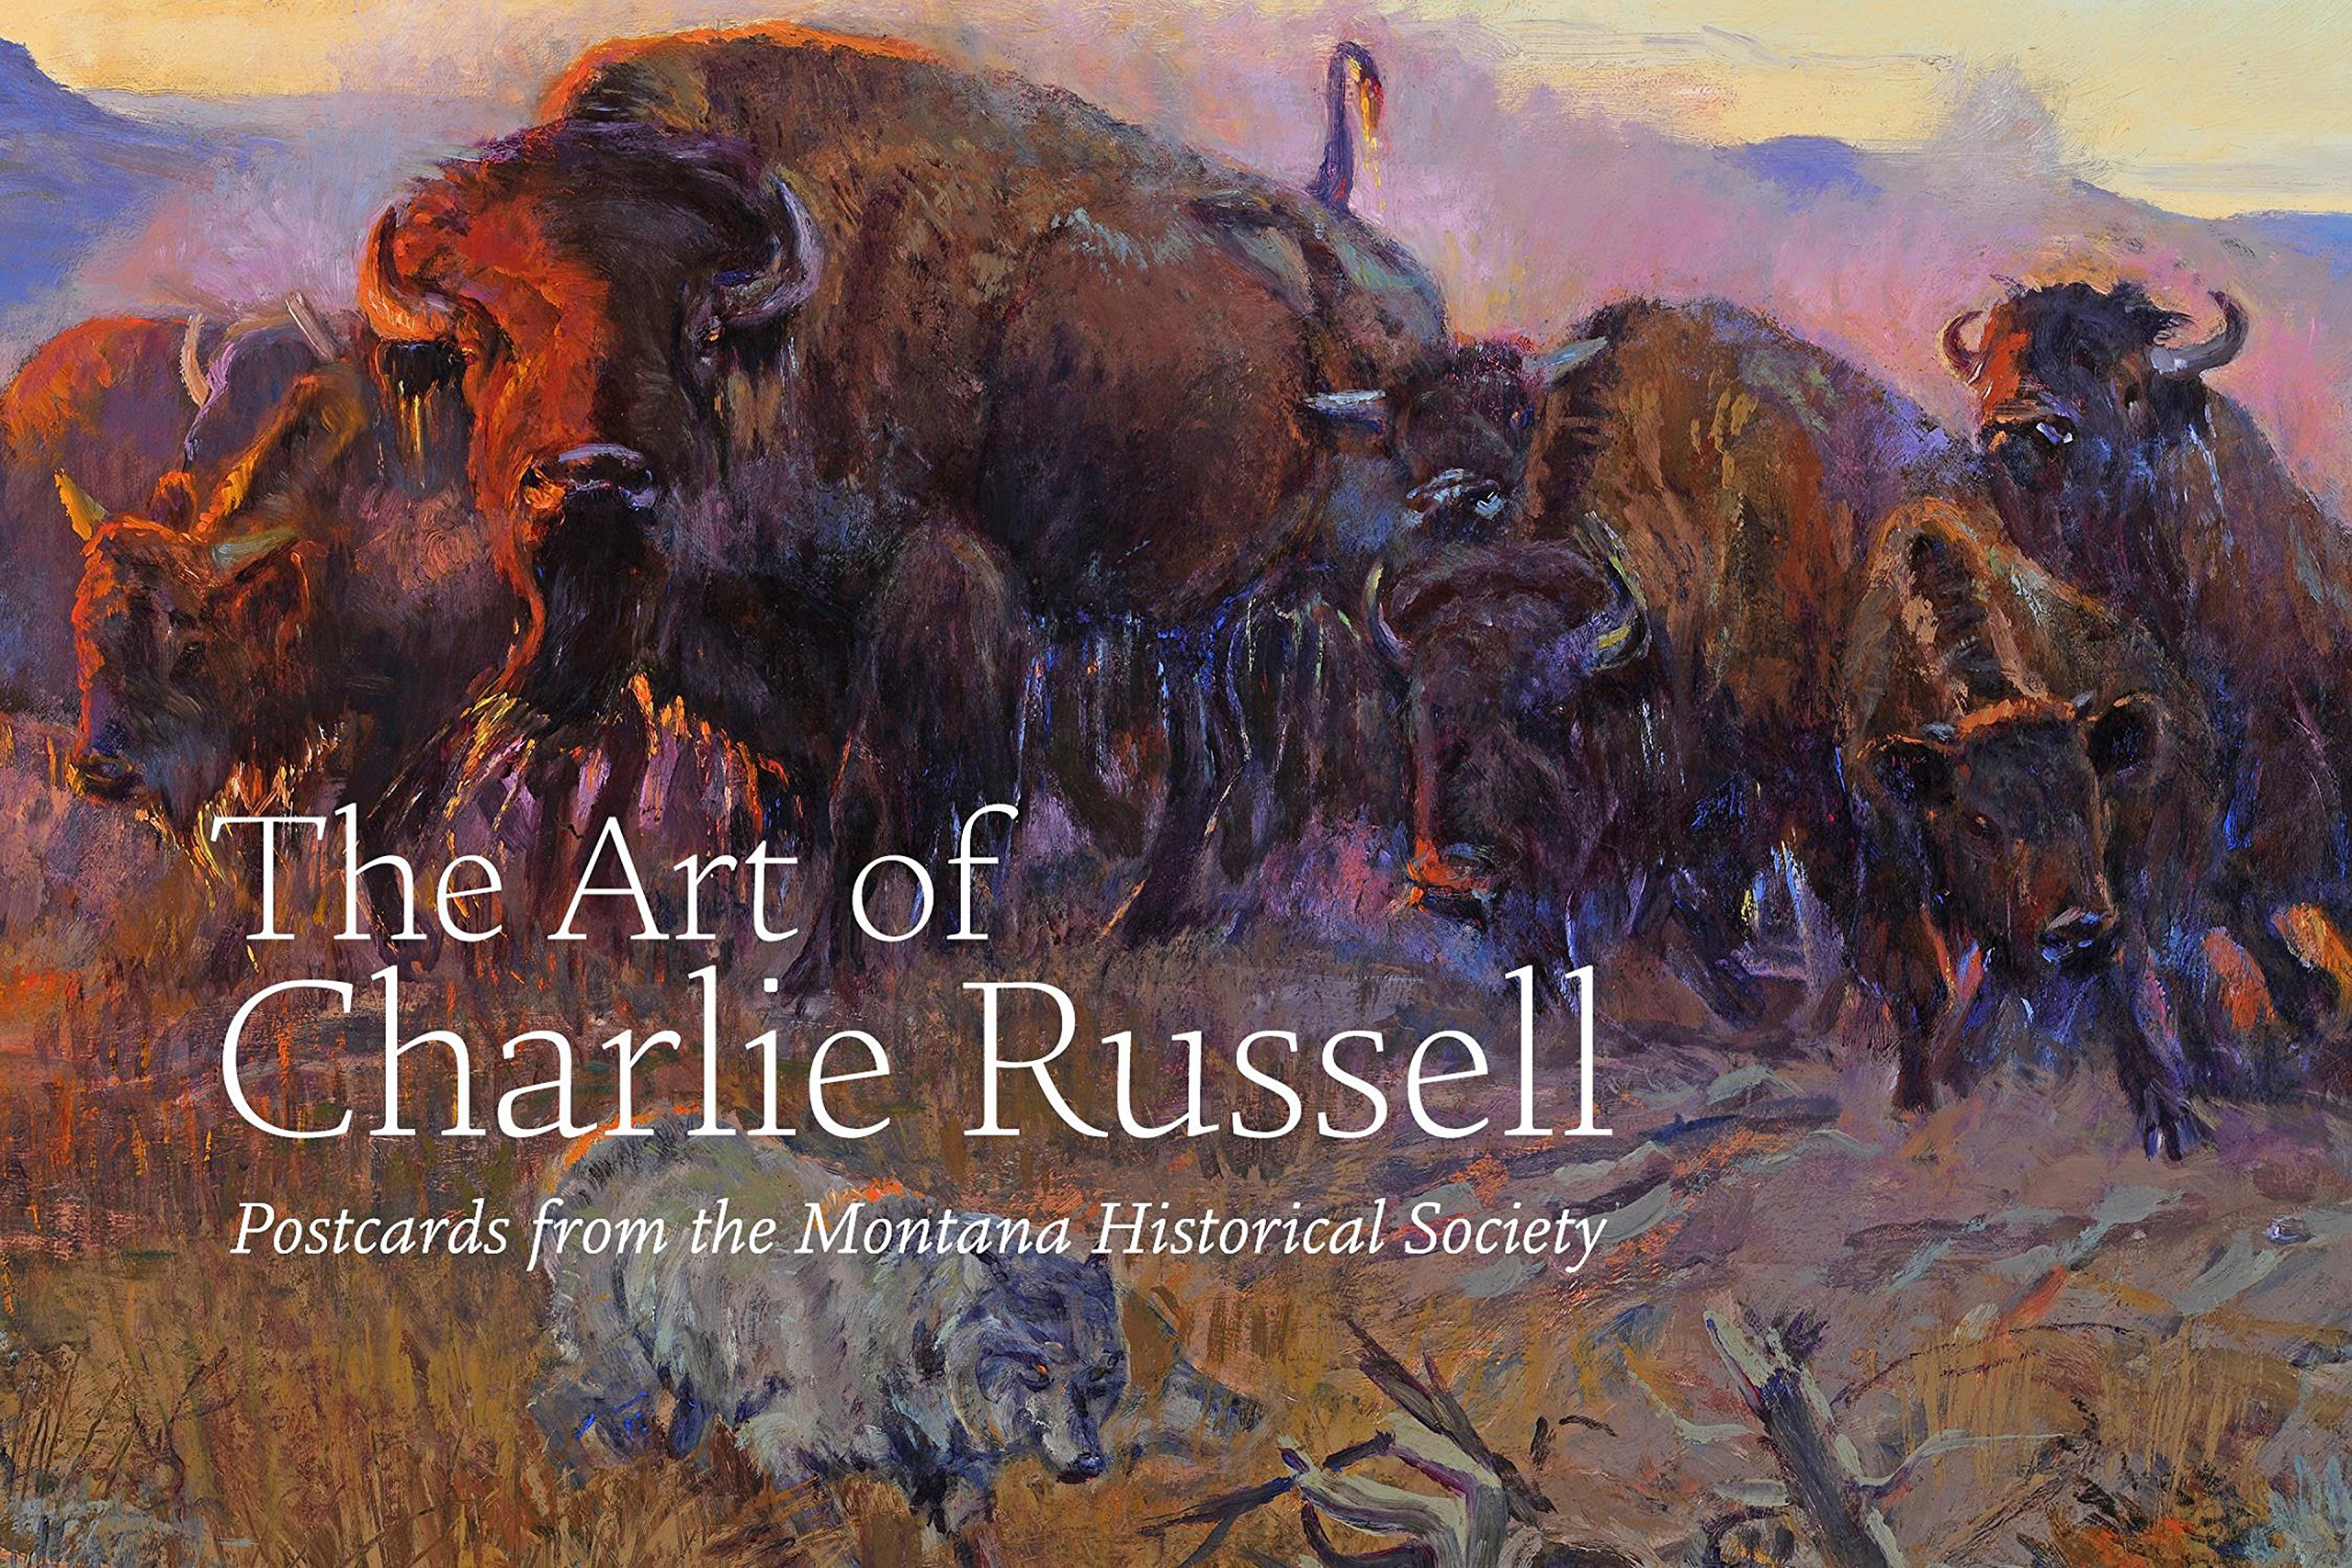 The Art of Charlie Russell: Postcards from the Montana Historical Society PDF